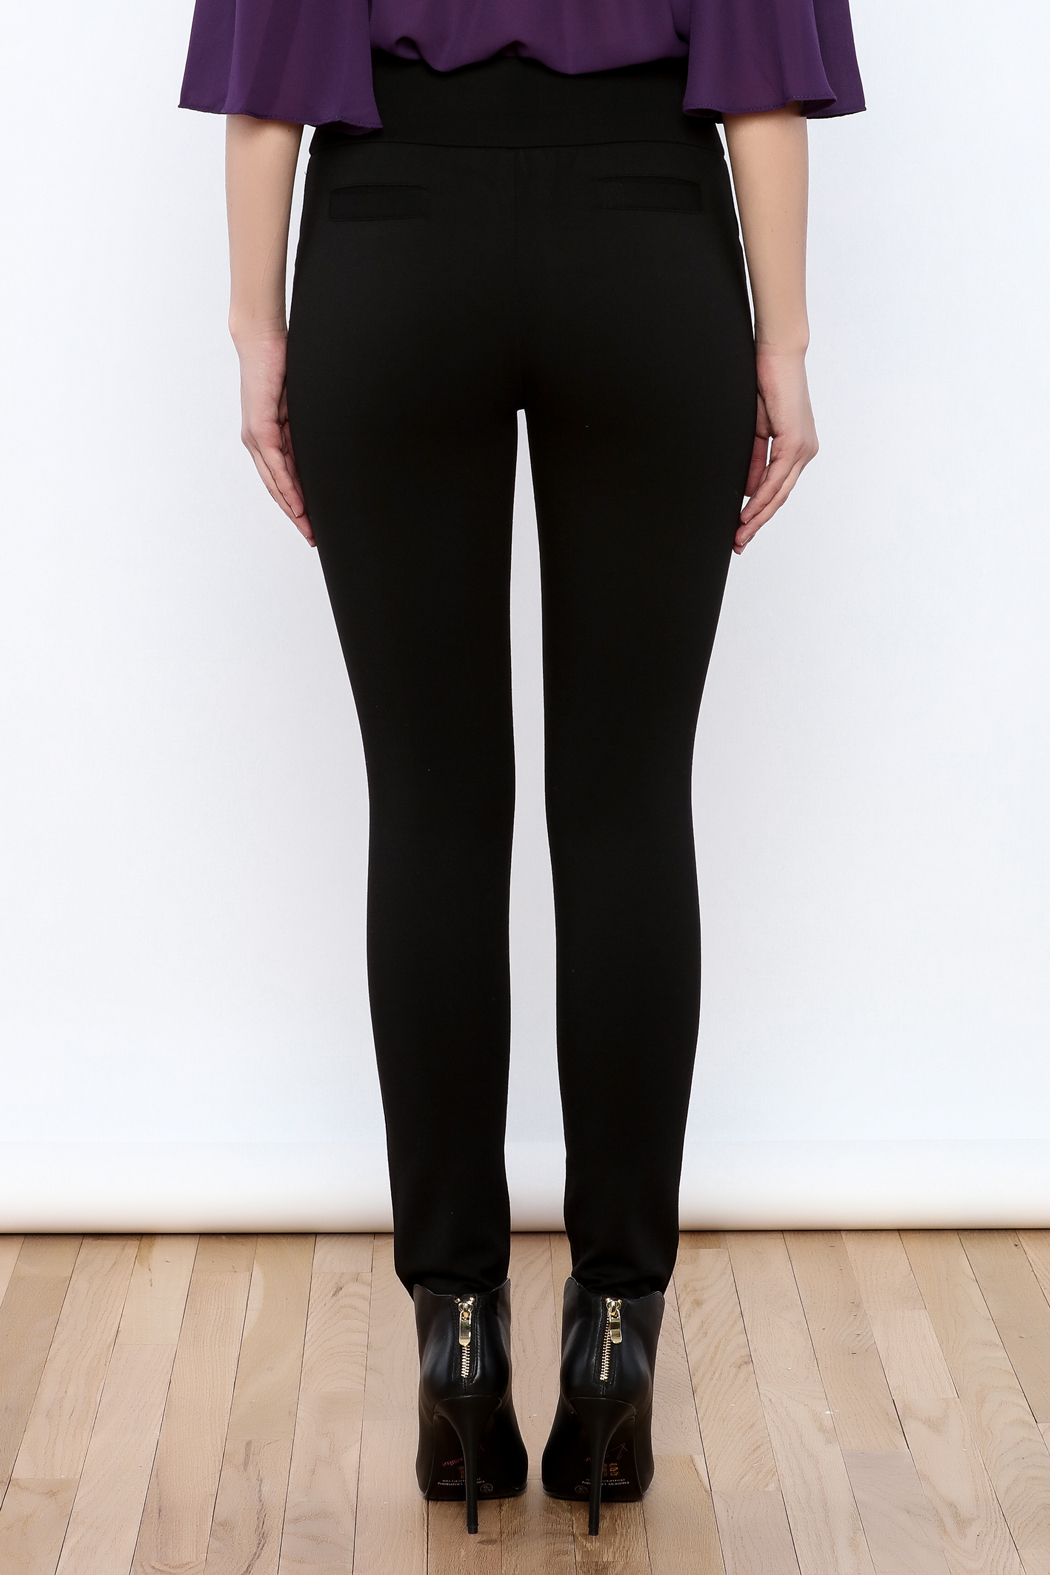 Gracia Black Stretchable Pants - Back Cropped Image